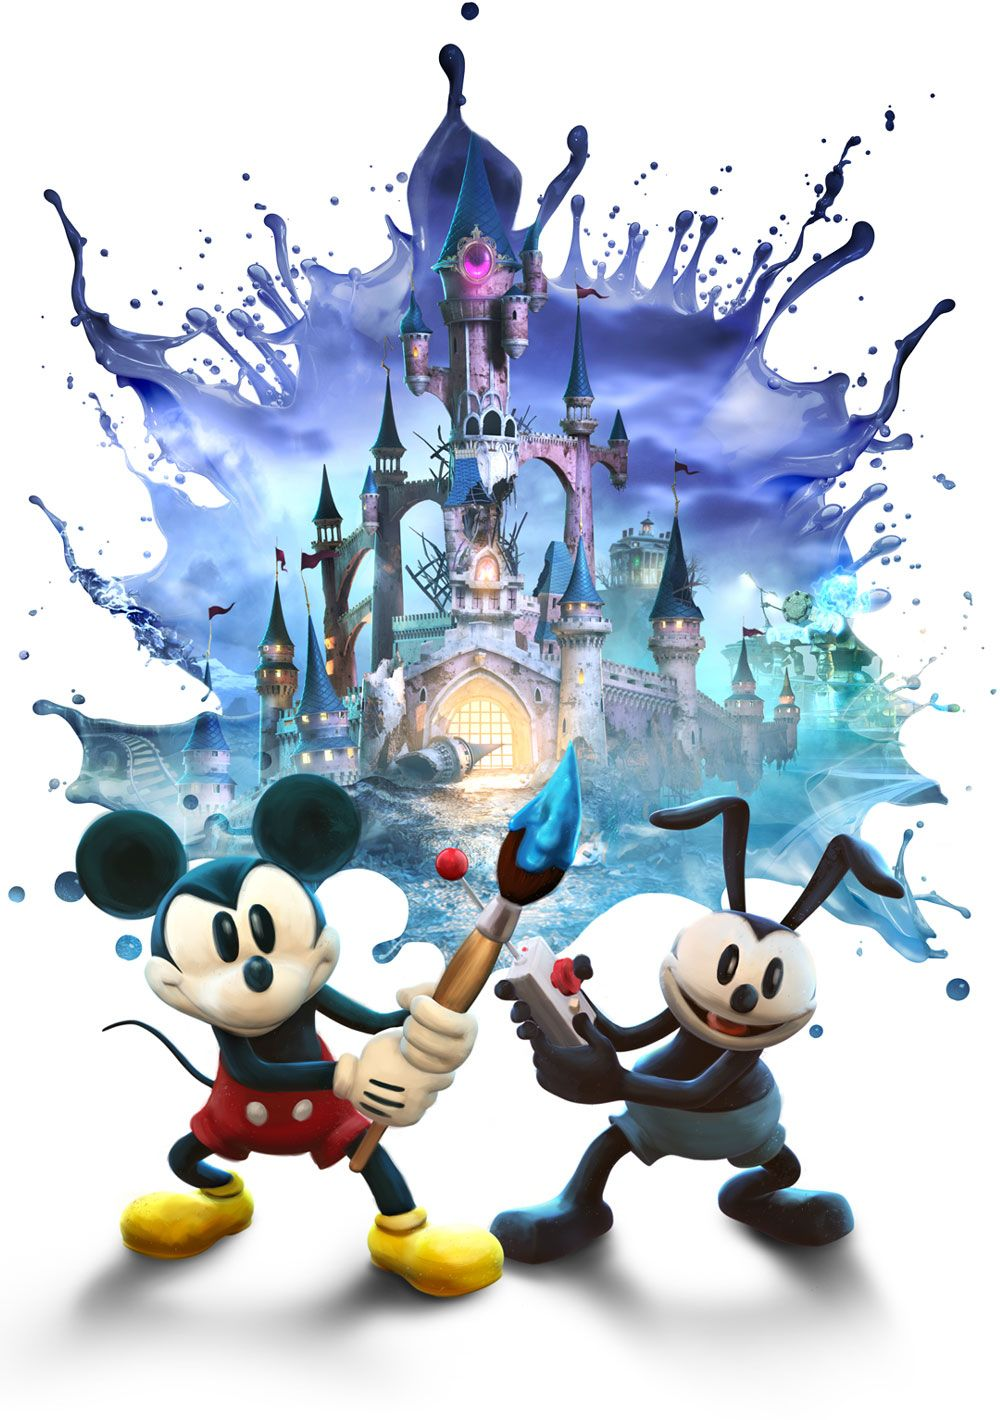 دانلود بازی Epic Mickey 2: The Power of Two برای PC